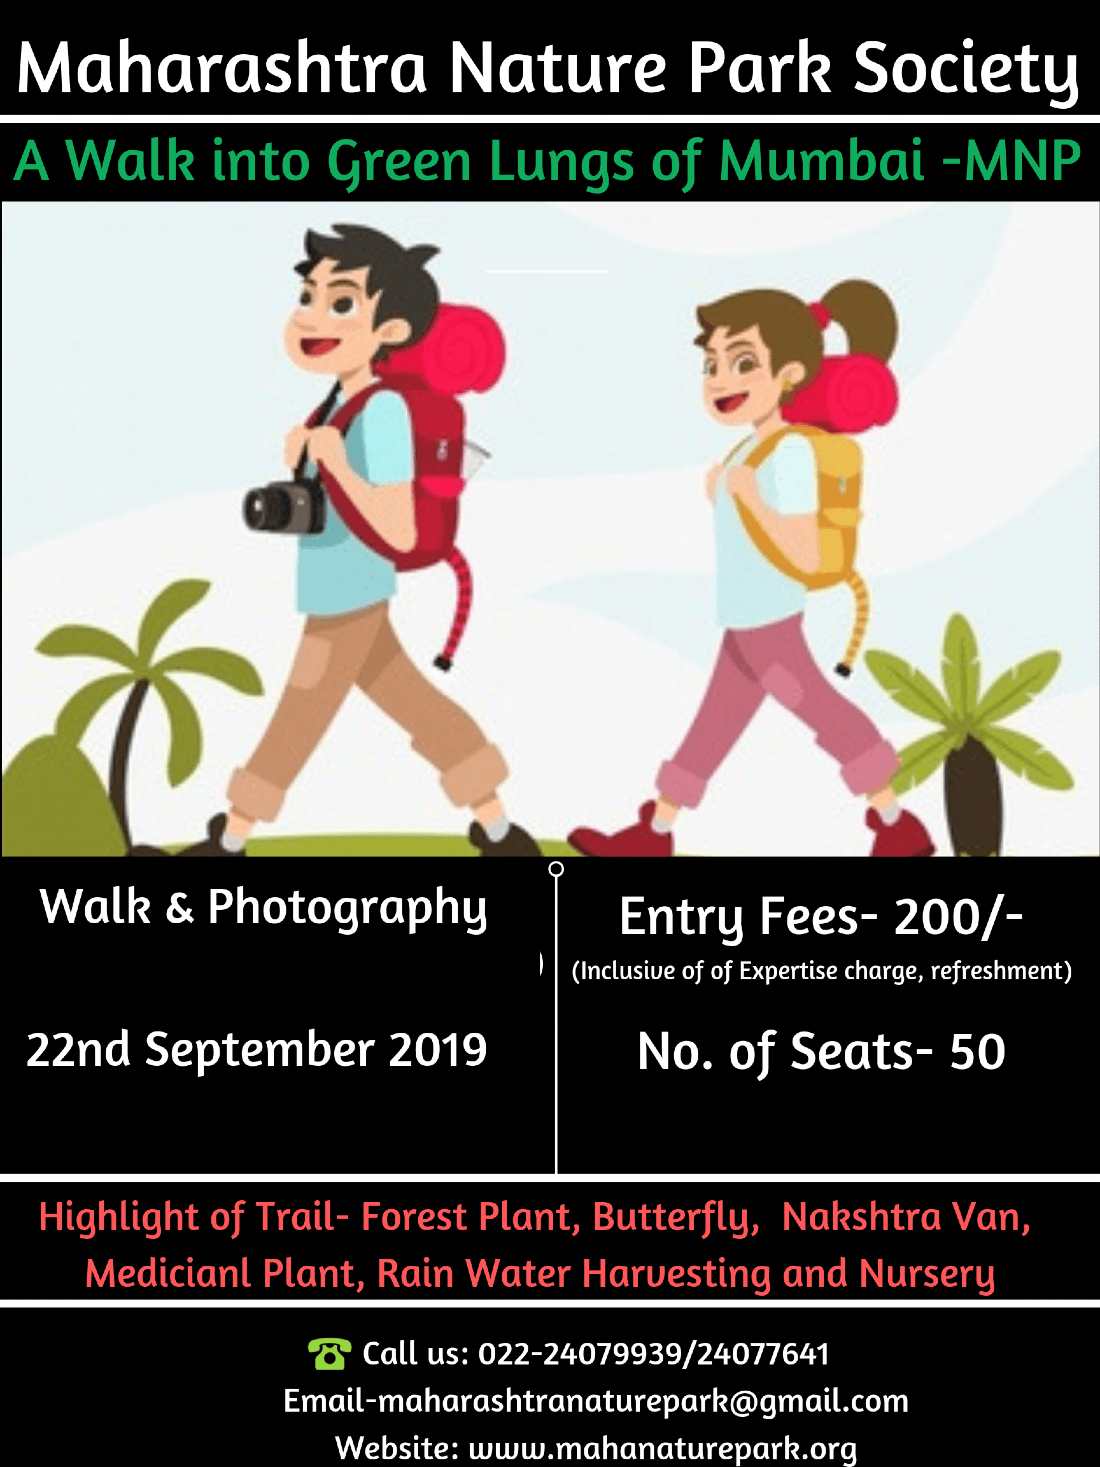 A walk to Green lungs of Mumbai-MNP